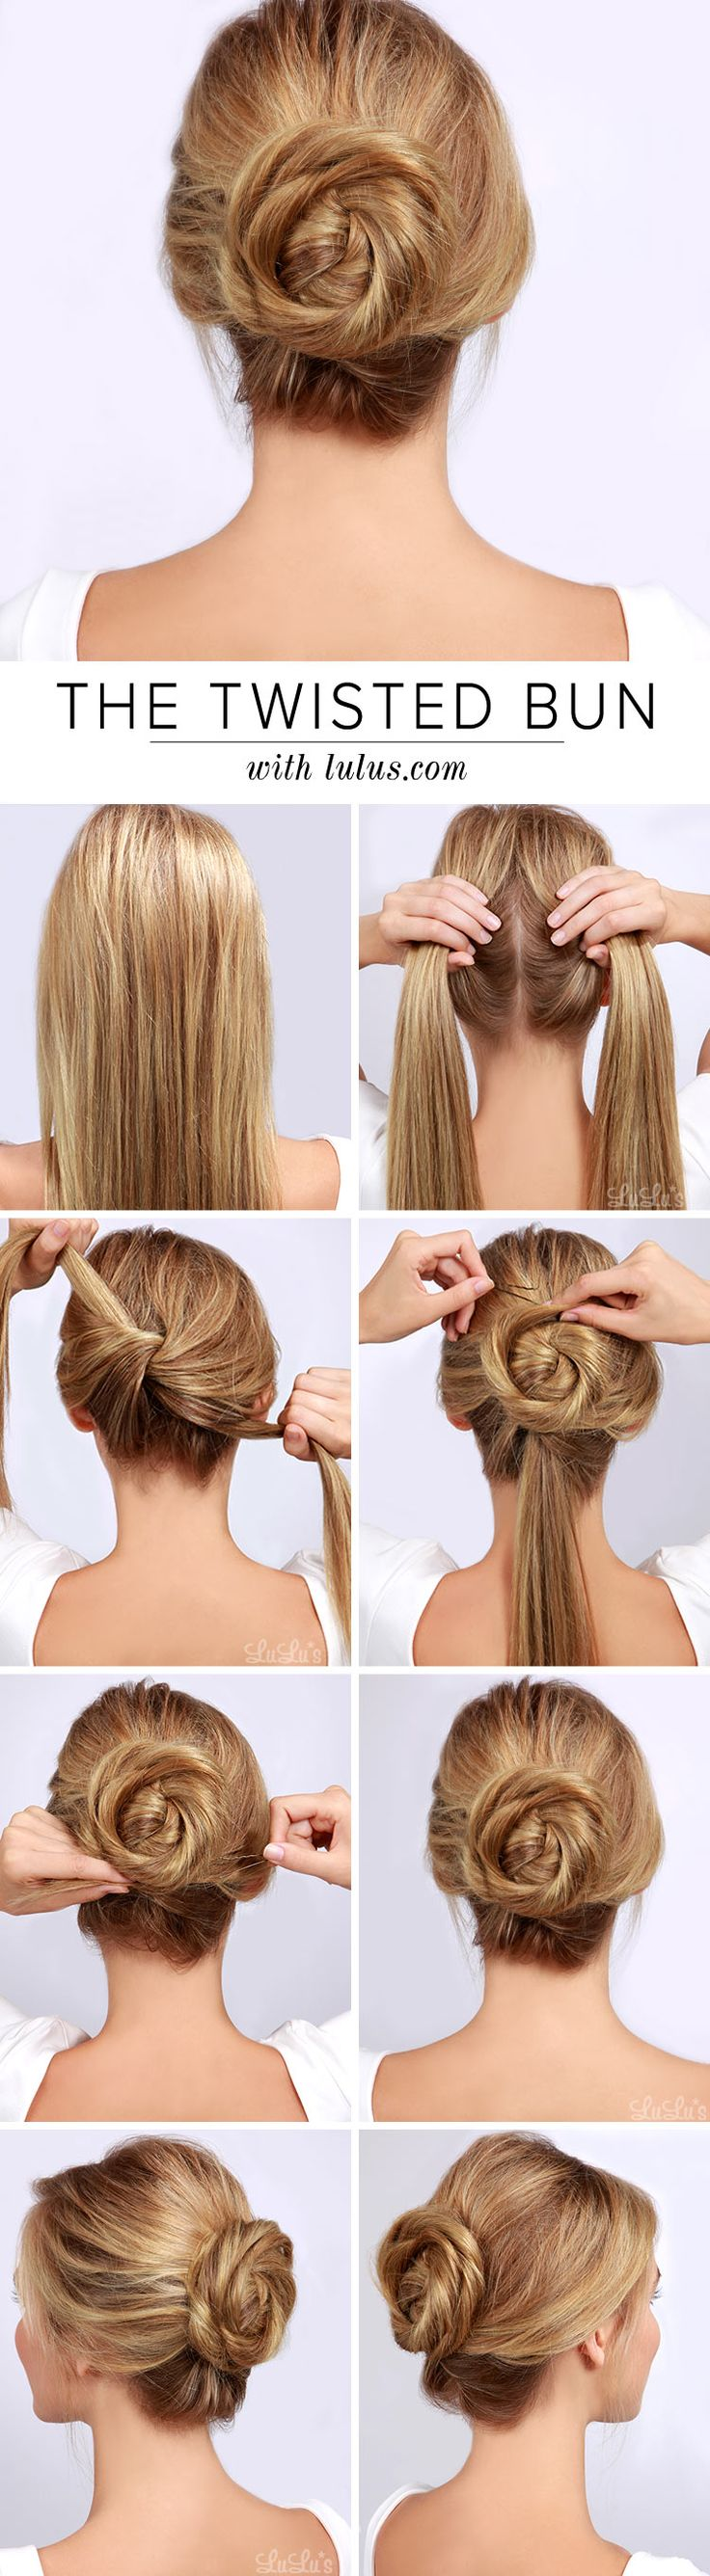 LuLu*s How-To: Twisted Bun Hair Tutorial - Lulus.com Fashion Blog